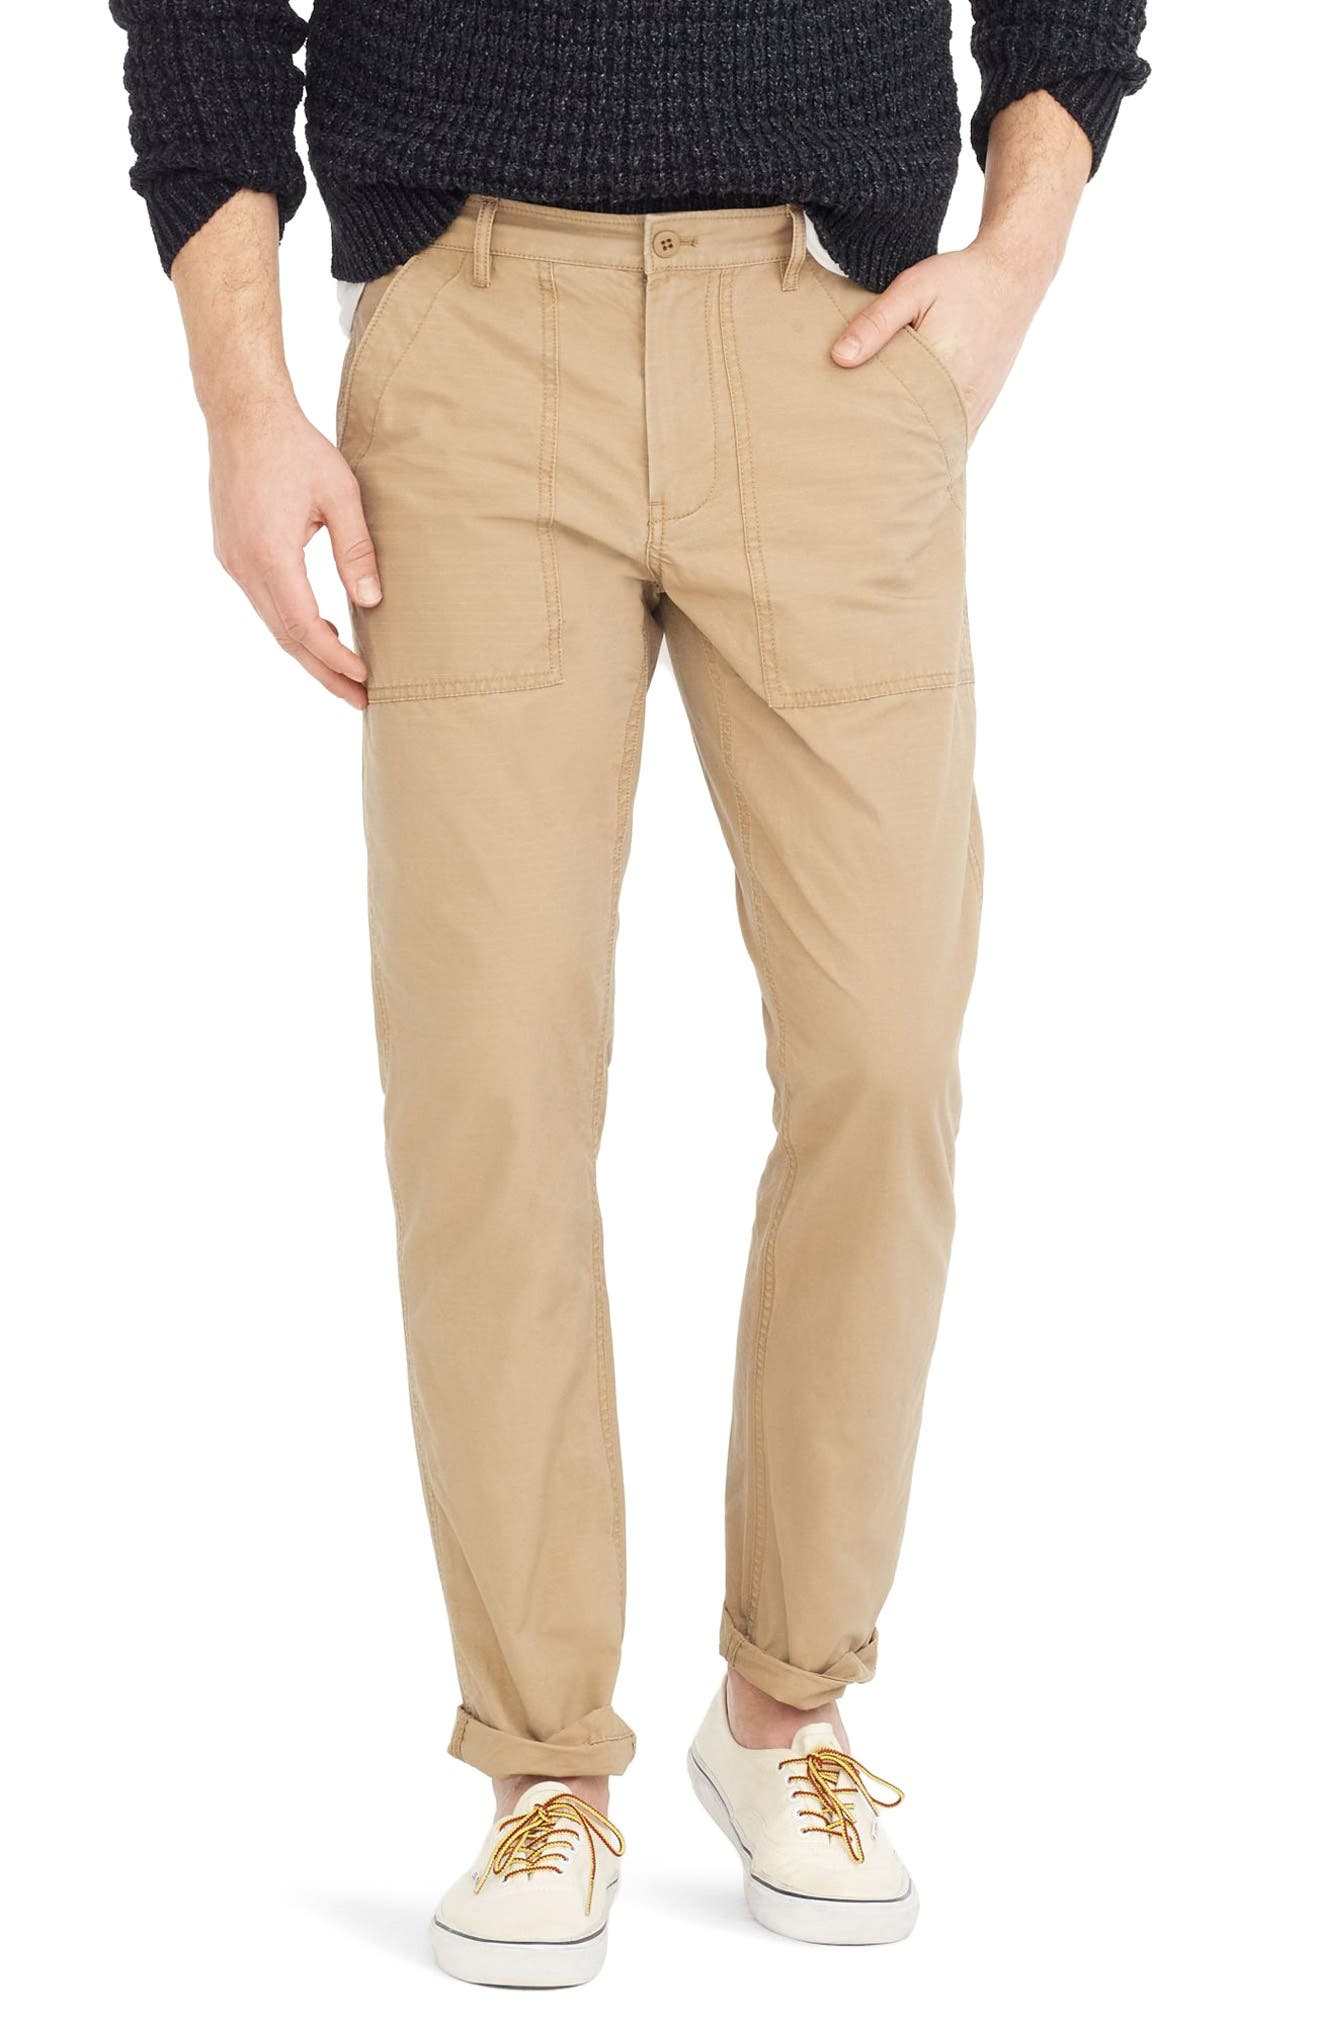 770 Straight Fit Ripstop Camp Pants,                         Main,                         color, 250